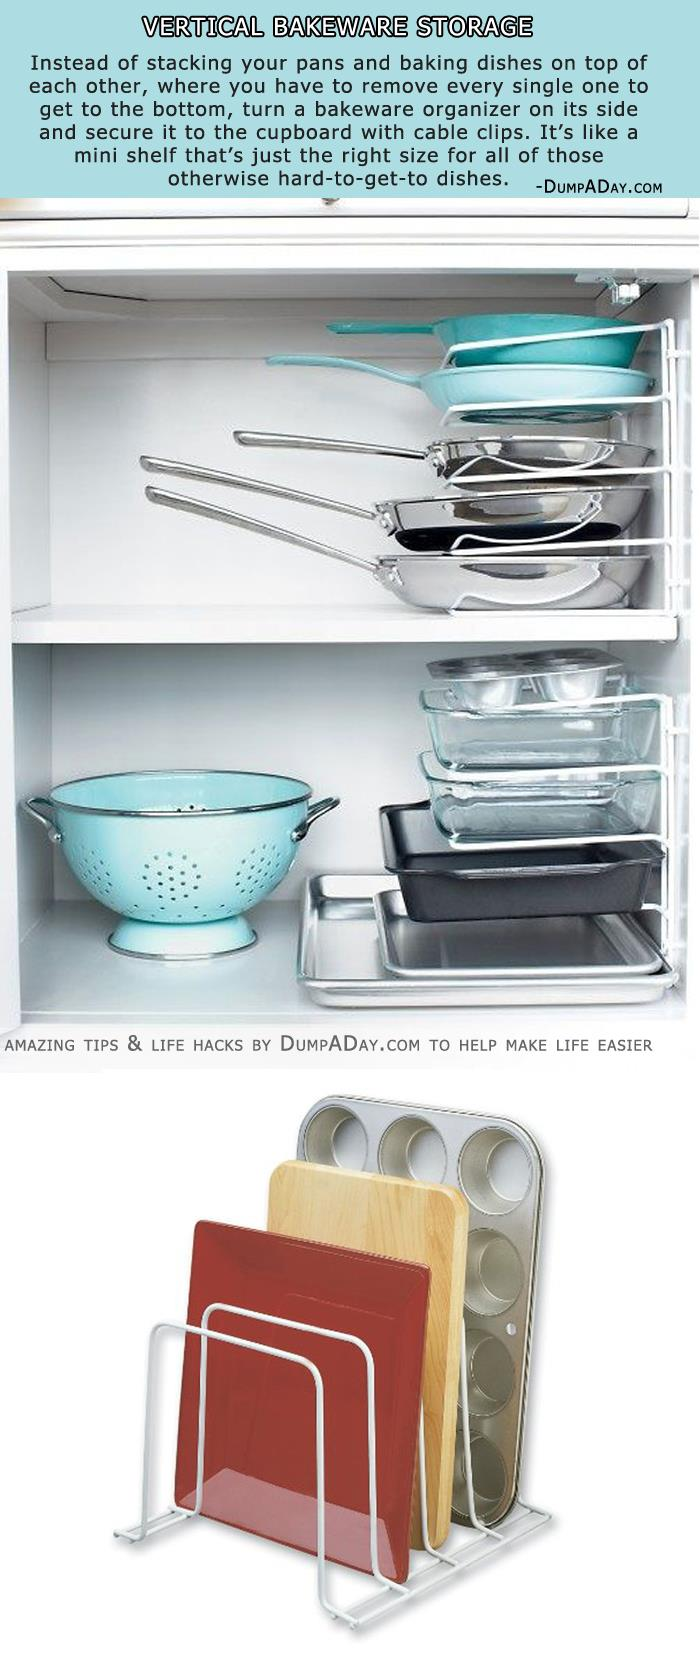 Vertical Bakeware Storage